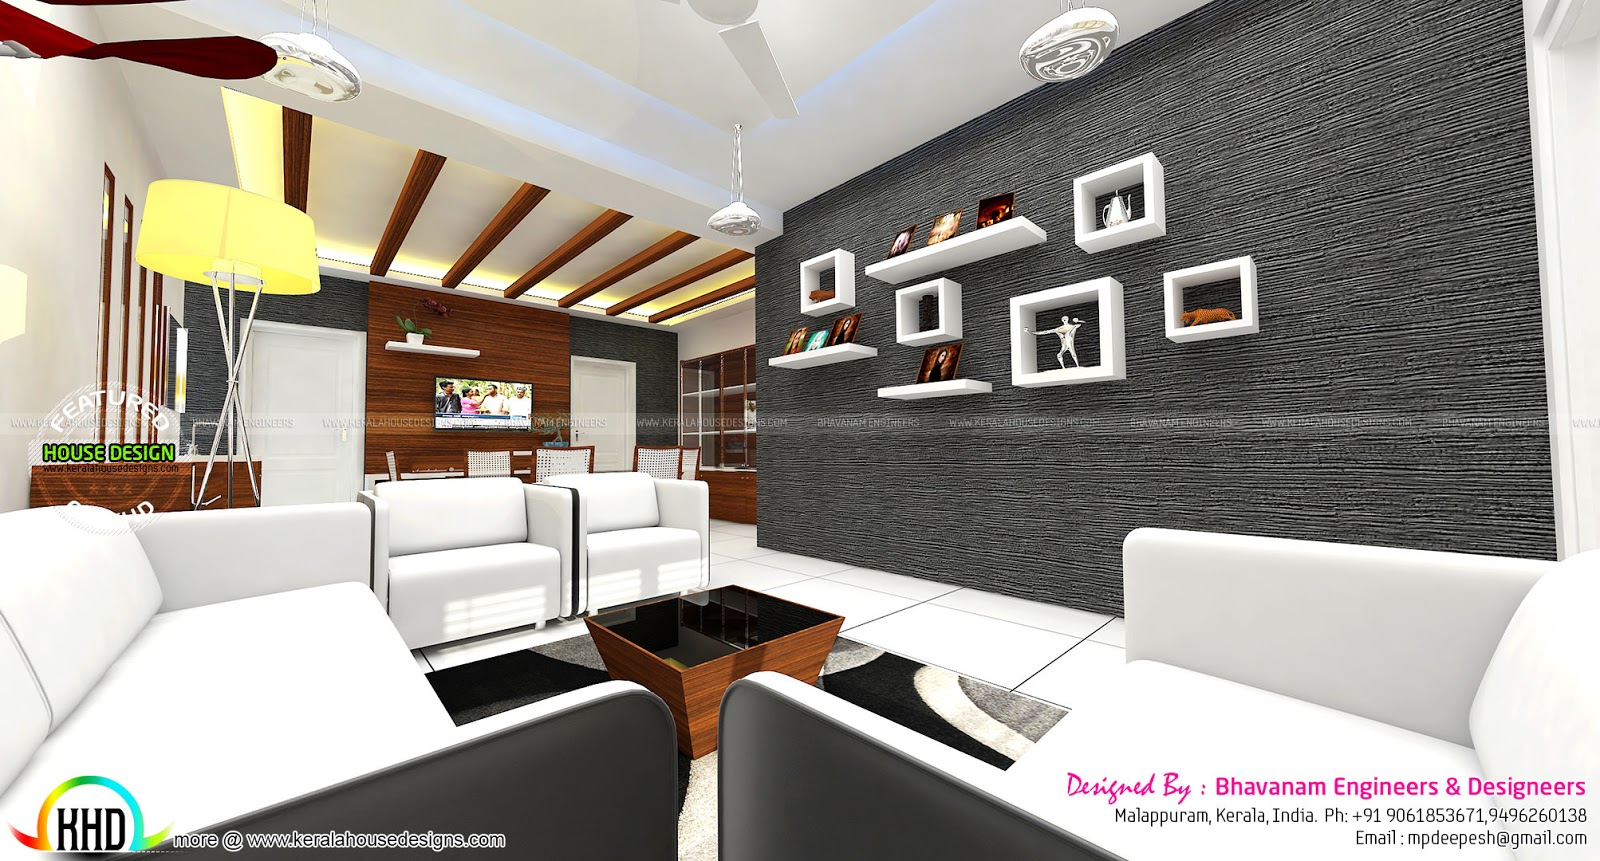 Living room interior decors ideas kerala home design and for House designs interior